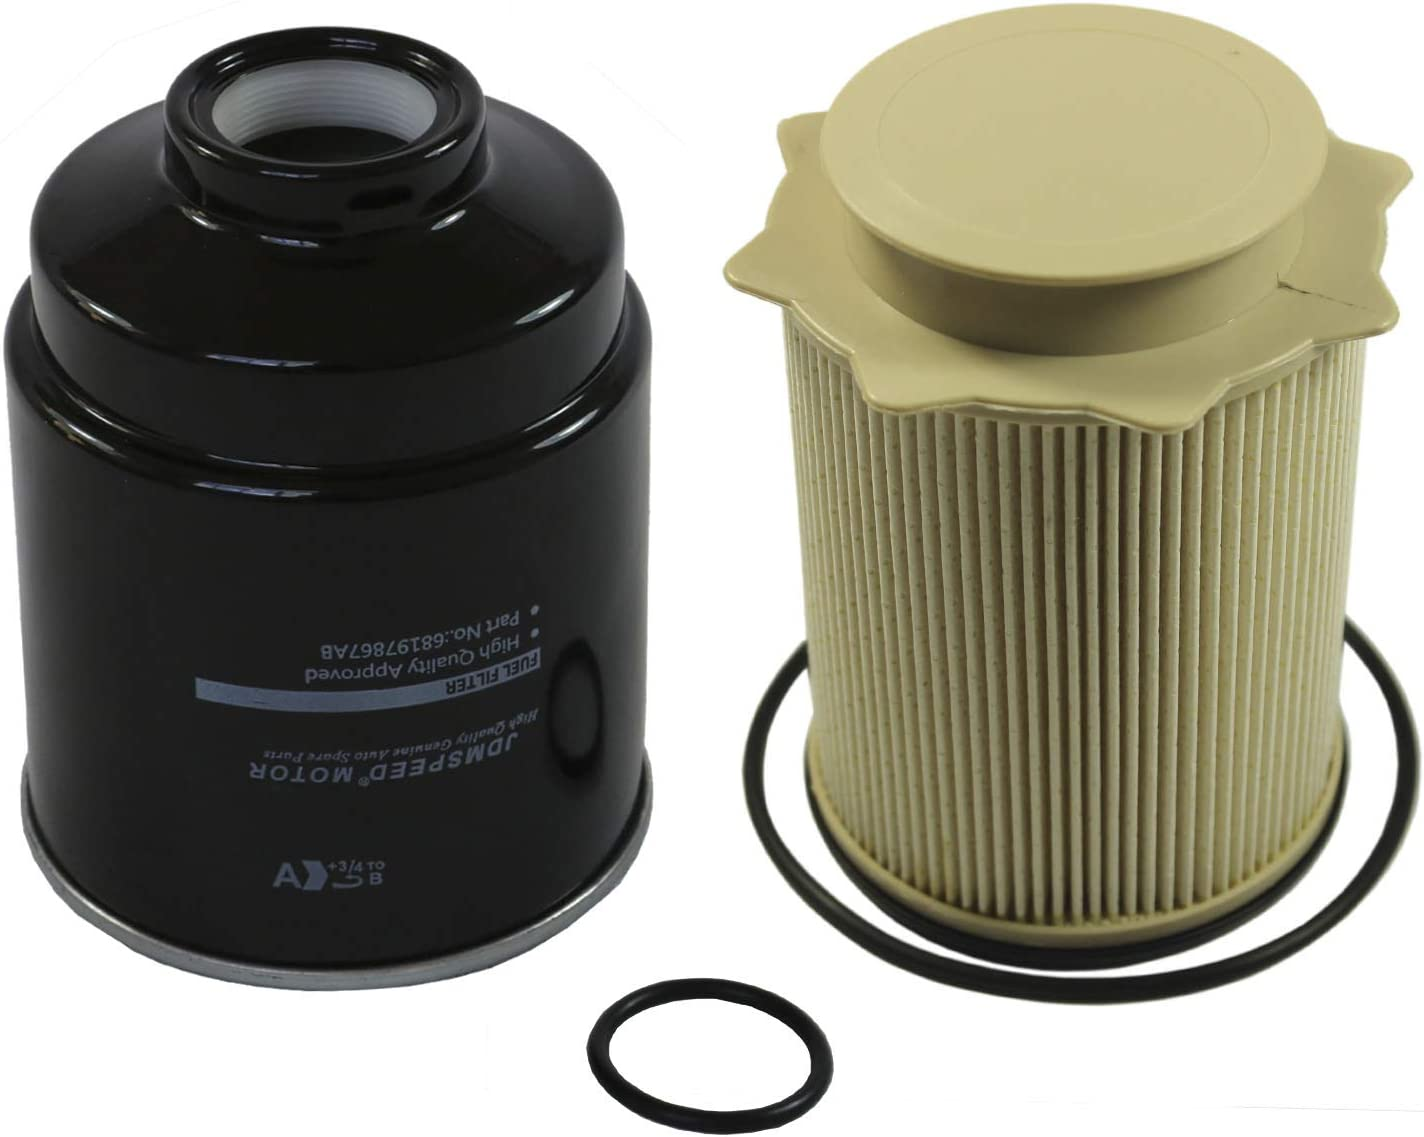 JDMSPEED New Diesel Fuel Directly managed store Filter Kit Sales results No. 1 Dodge Ram 6. Replacement For